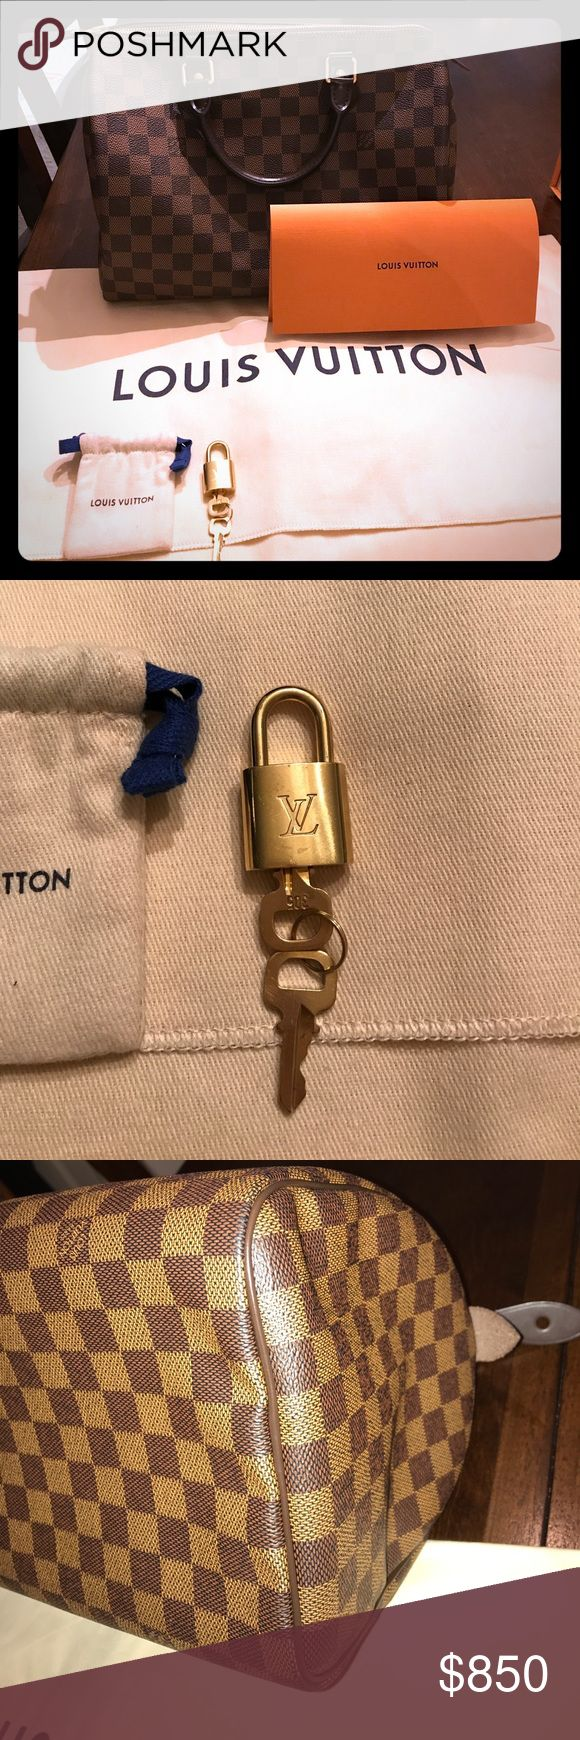 Louis Vuitton Damier Ebene Speedy 30 100% Authentic purchased this bag from Louis Vuitton online store in December 2016...this bag comes with receipt, lock and 2 keys, dust bag and original box. It's in excellent condition. Louis Vuitton Bags Satchels